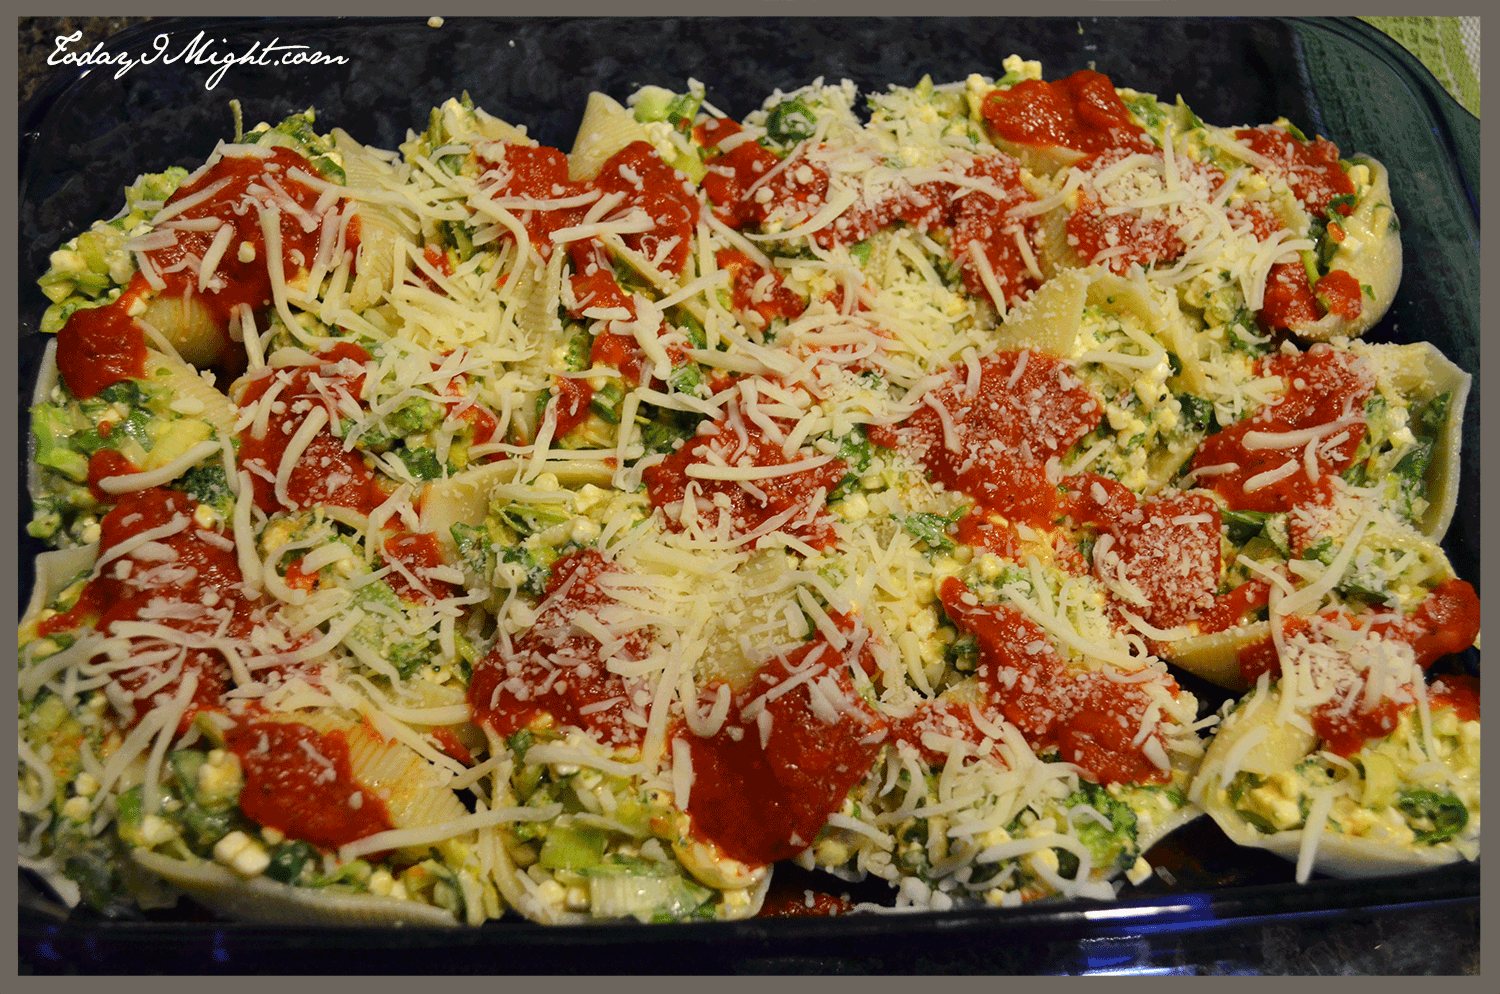 Spinach, Broccoli and Leek Stuffed Shells - Today I Might...